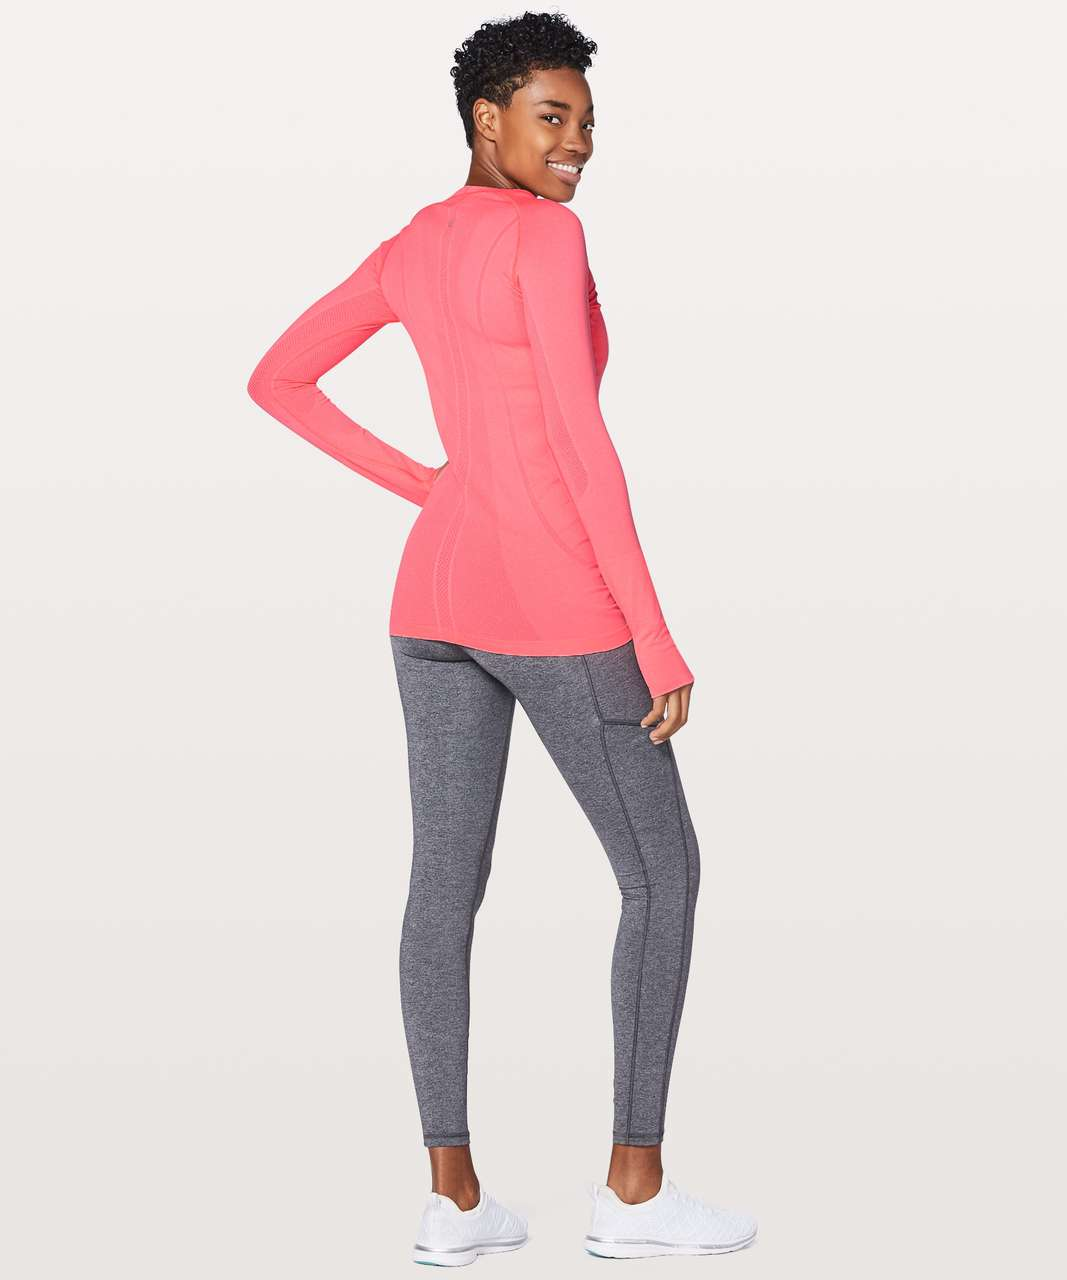 Lululemon Swiftly Tech Long Sleeve Crew - Flash Light / White